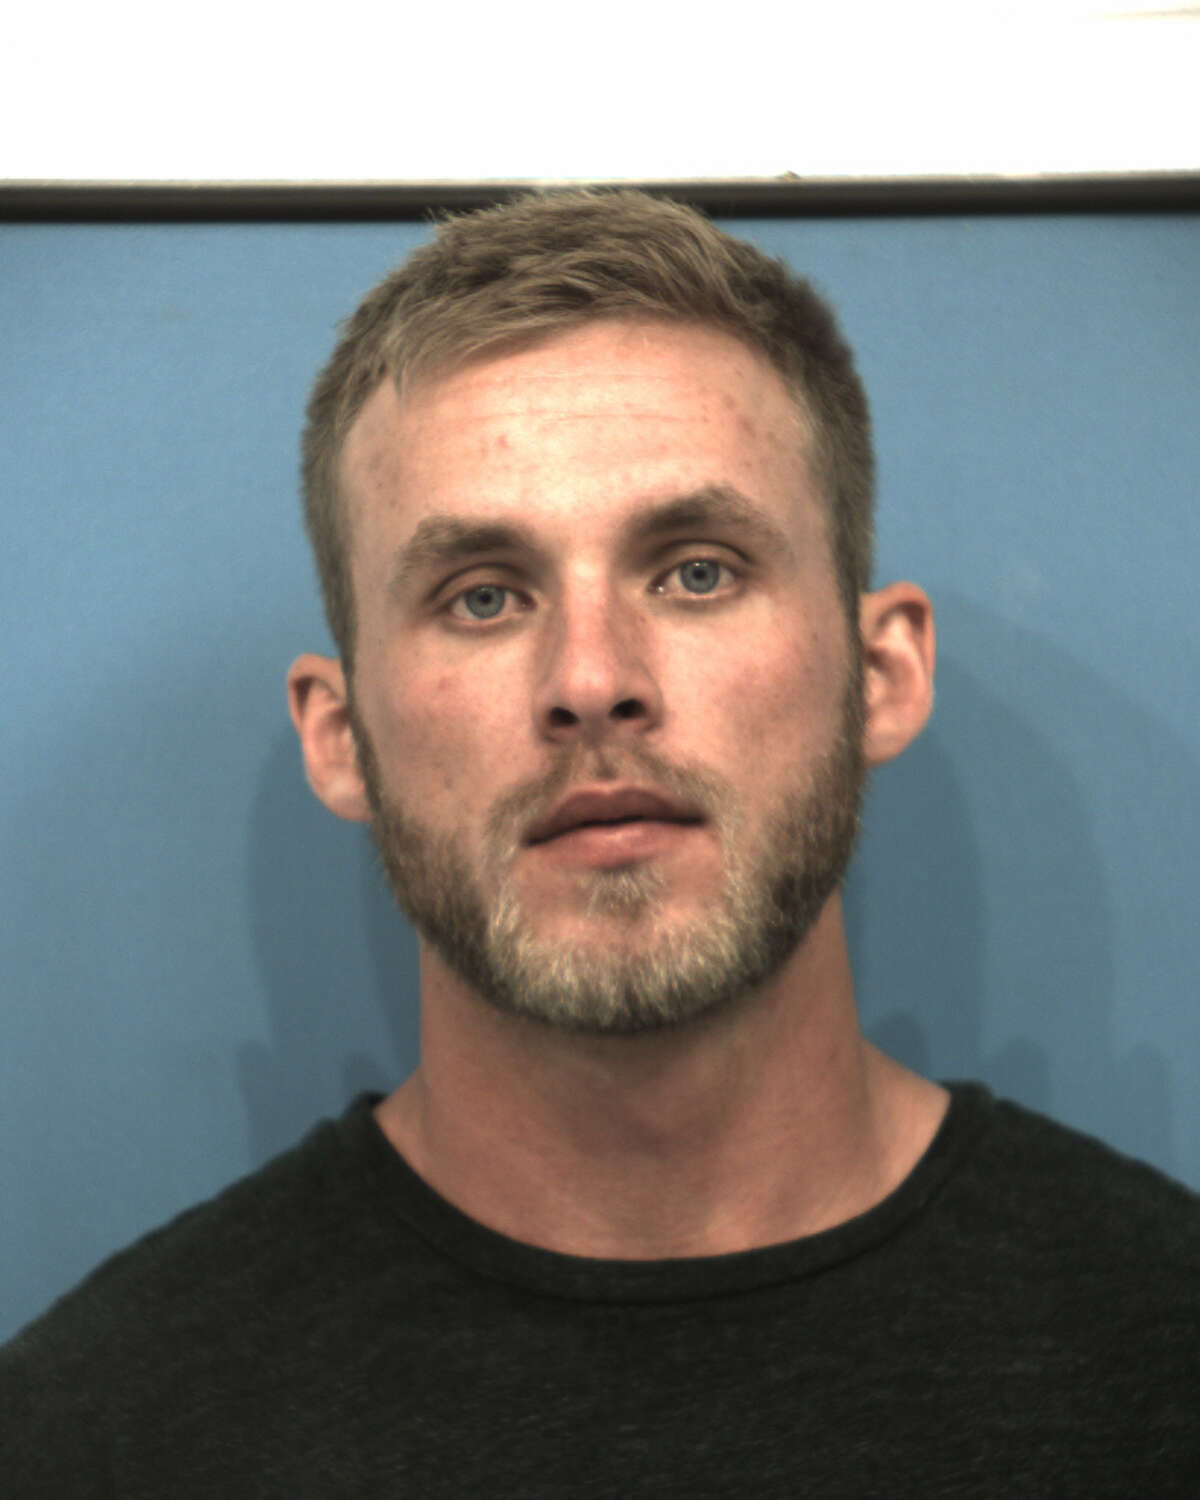 Jake Fenske, who is listed as a football and track coach and science teacher on Hutto High School's website, was charged with improper relationship between educator and student Friday. He was released the same day after posting $20,000 bond.